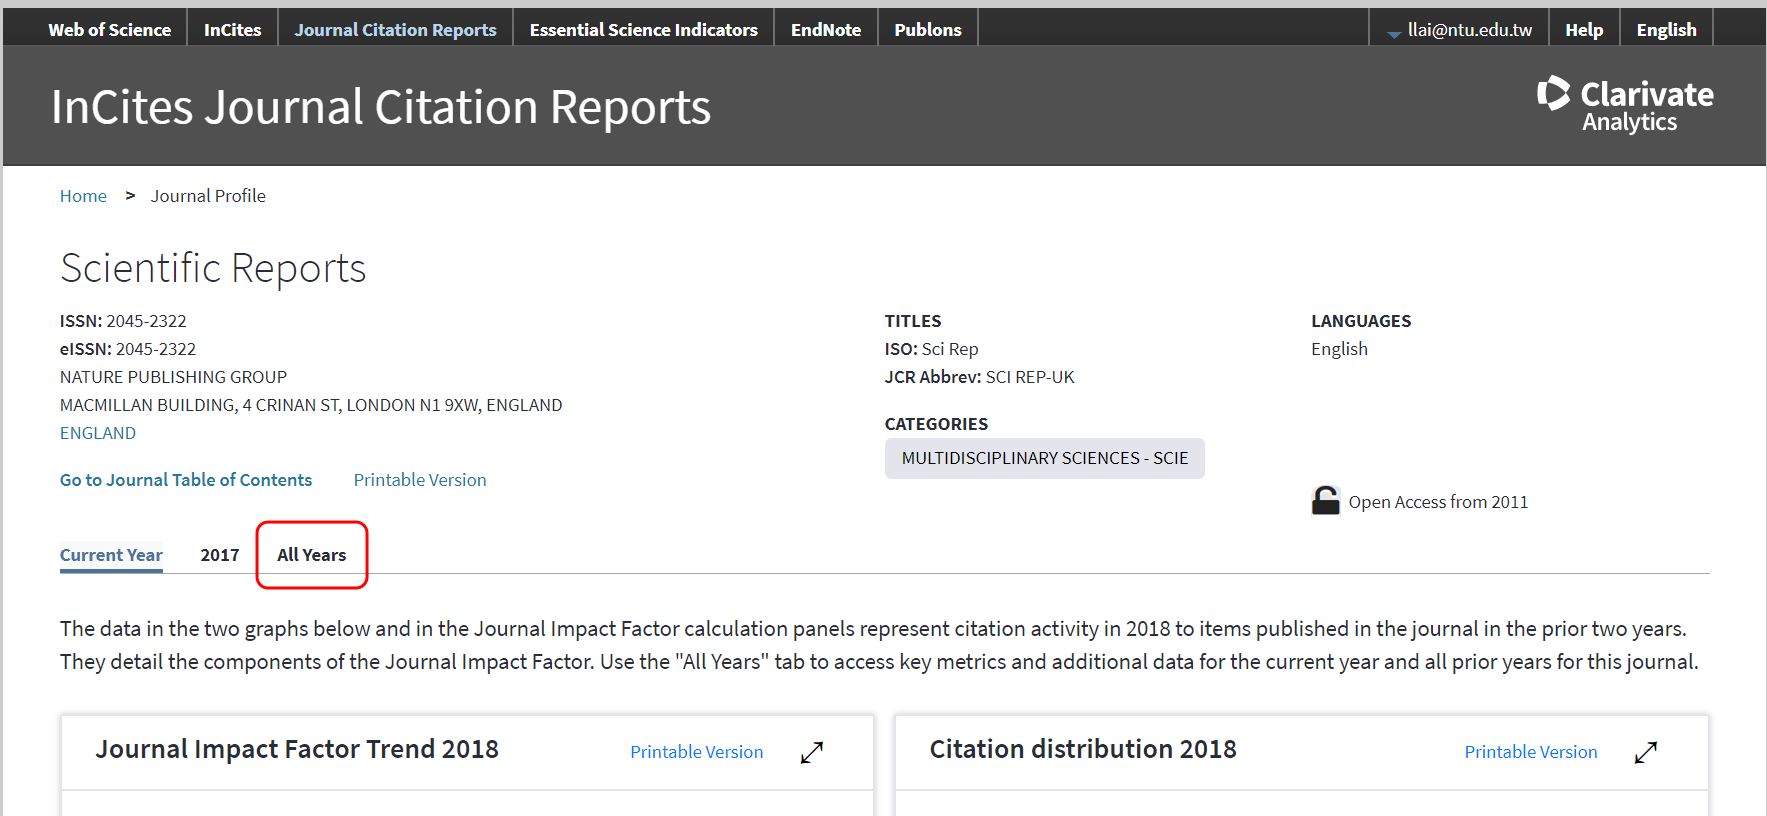 Exercise] Find the 5-year impact factor and rank of